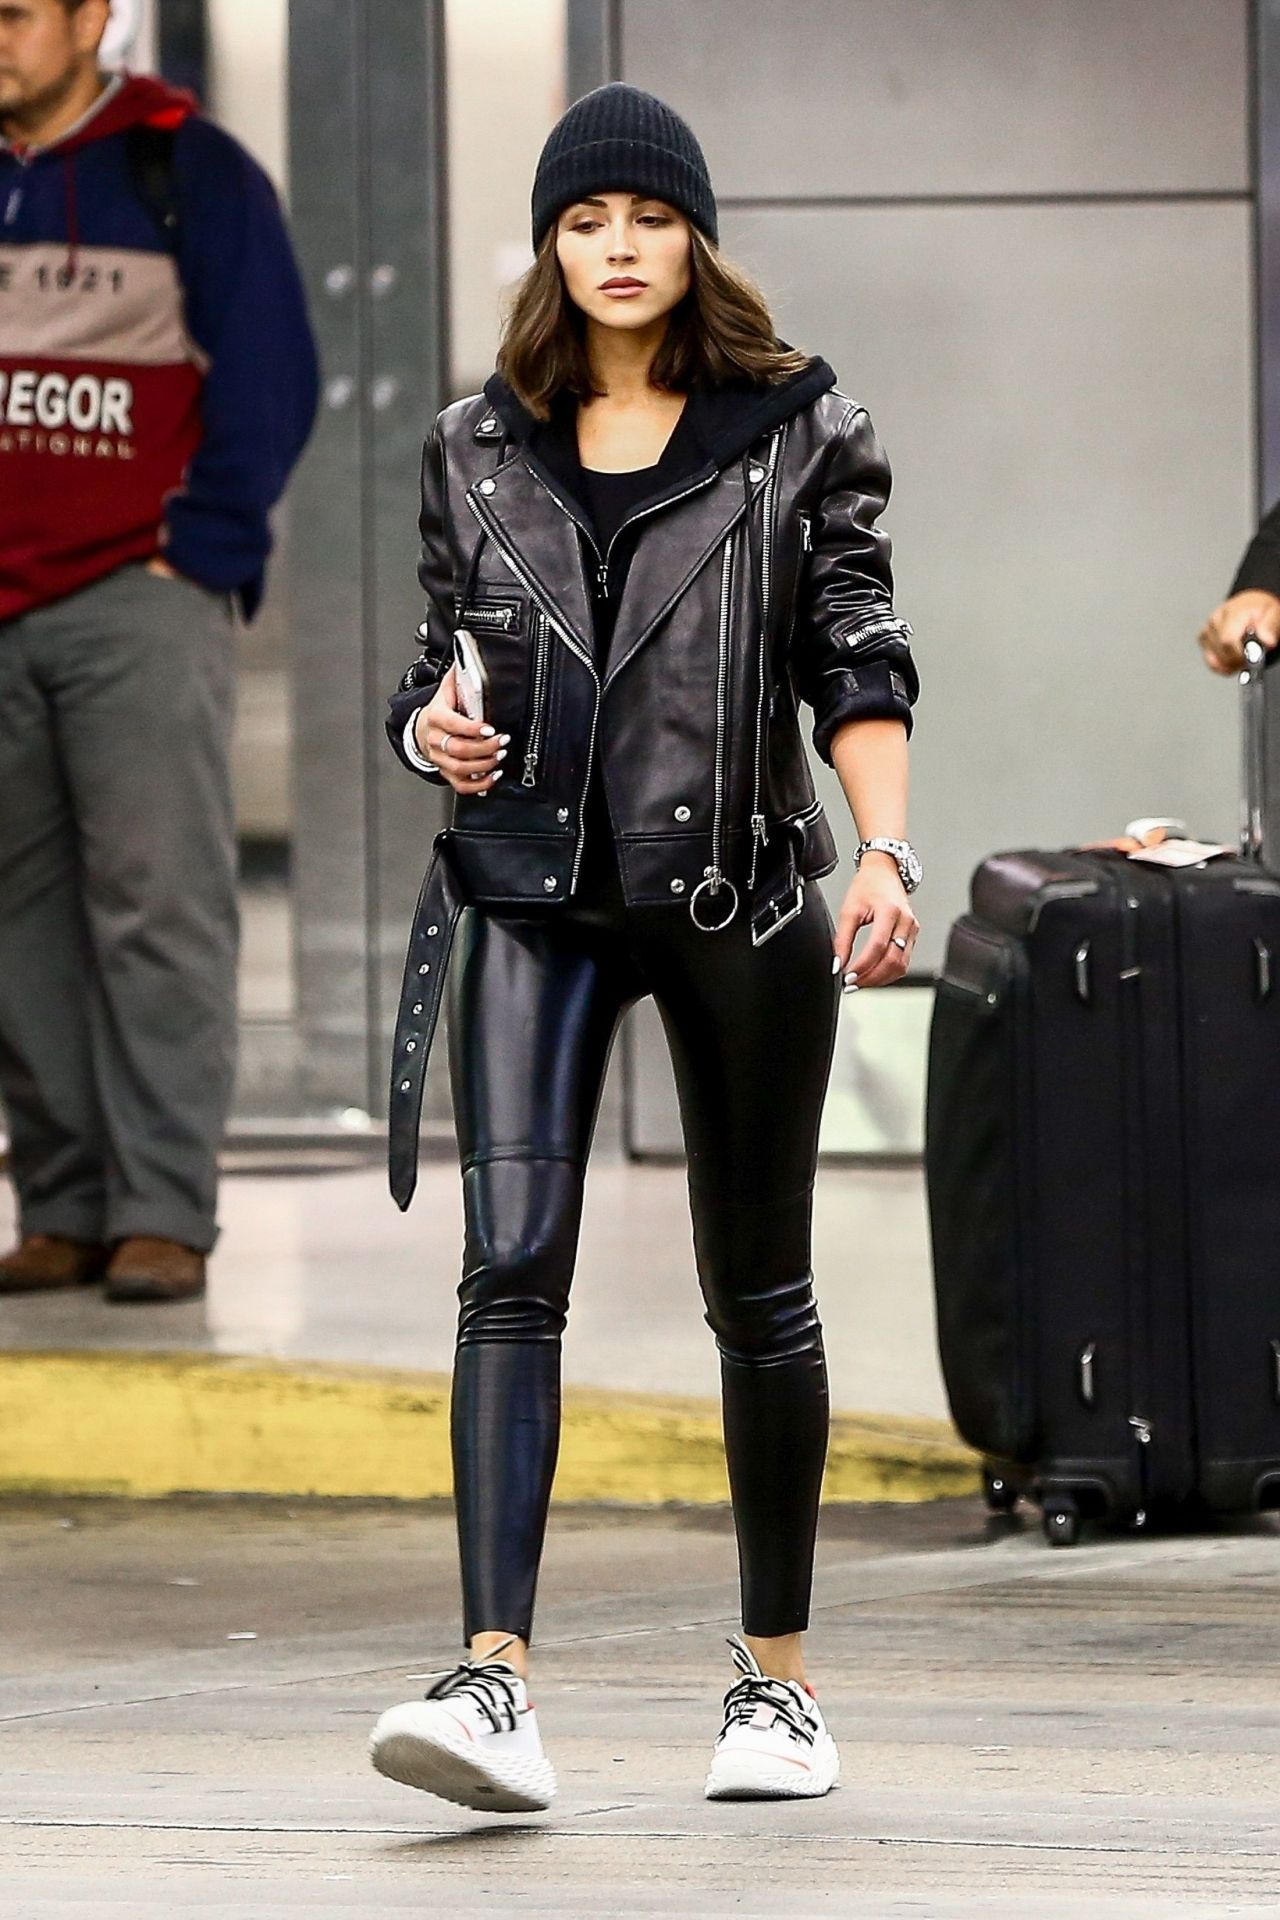 Olivia Culpo In Leather Jacket And Skintight Leather Pants -5689